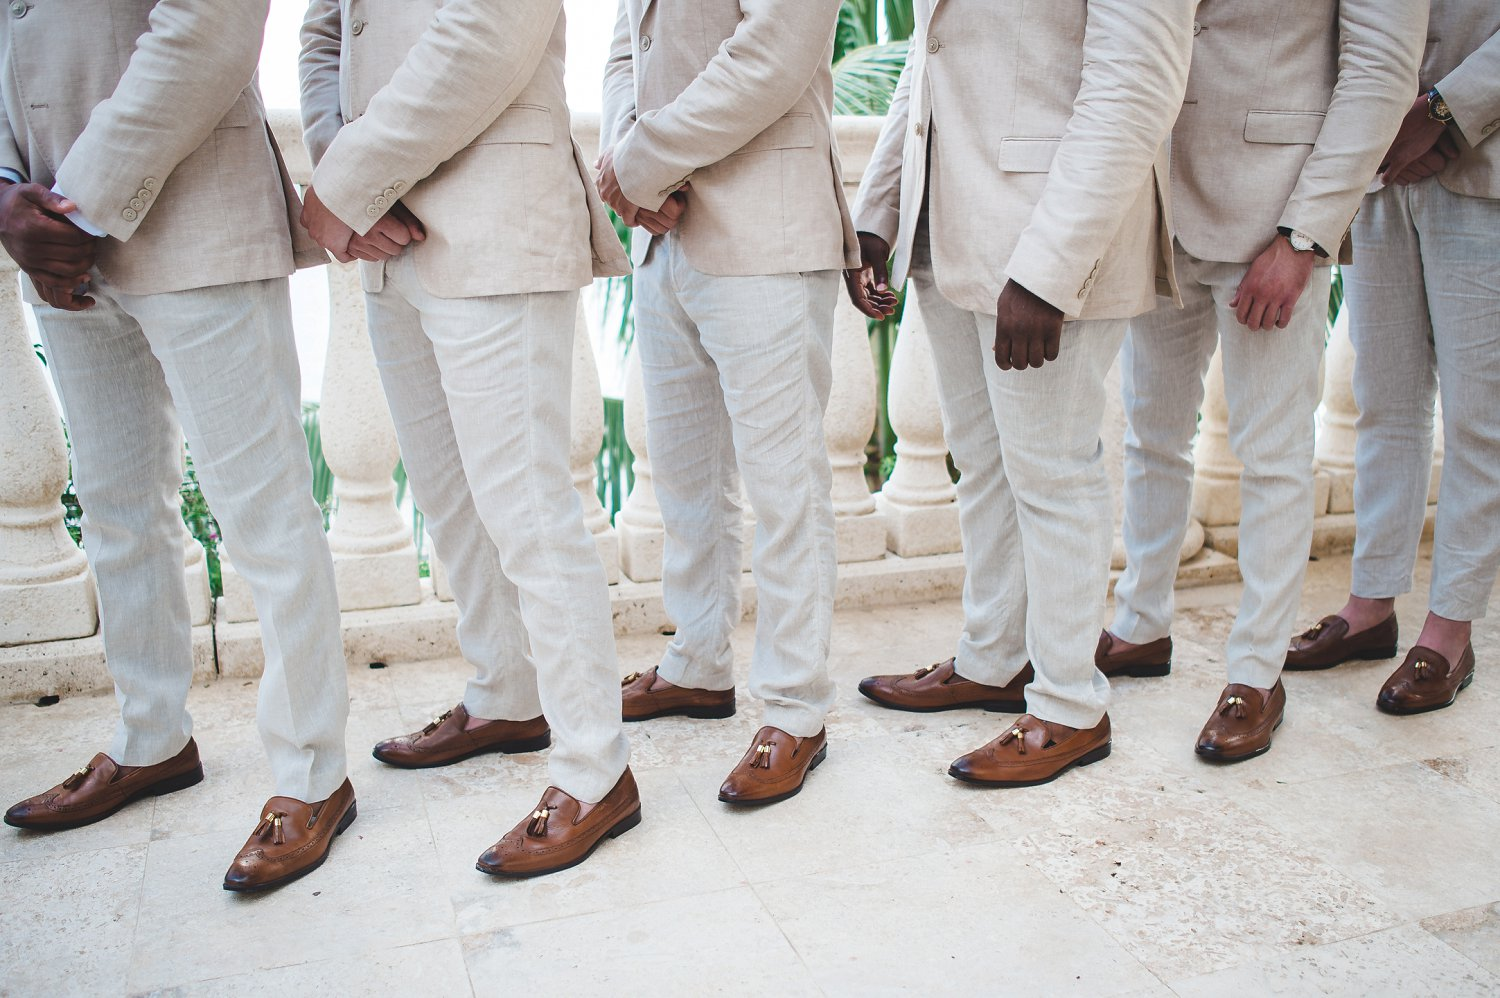 Stylish leather shoes for groomsment with tan khaki suits at Caribbean wedding.